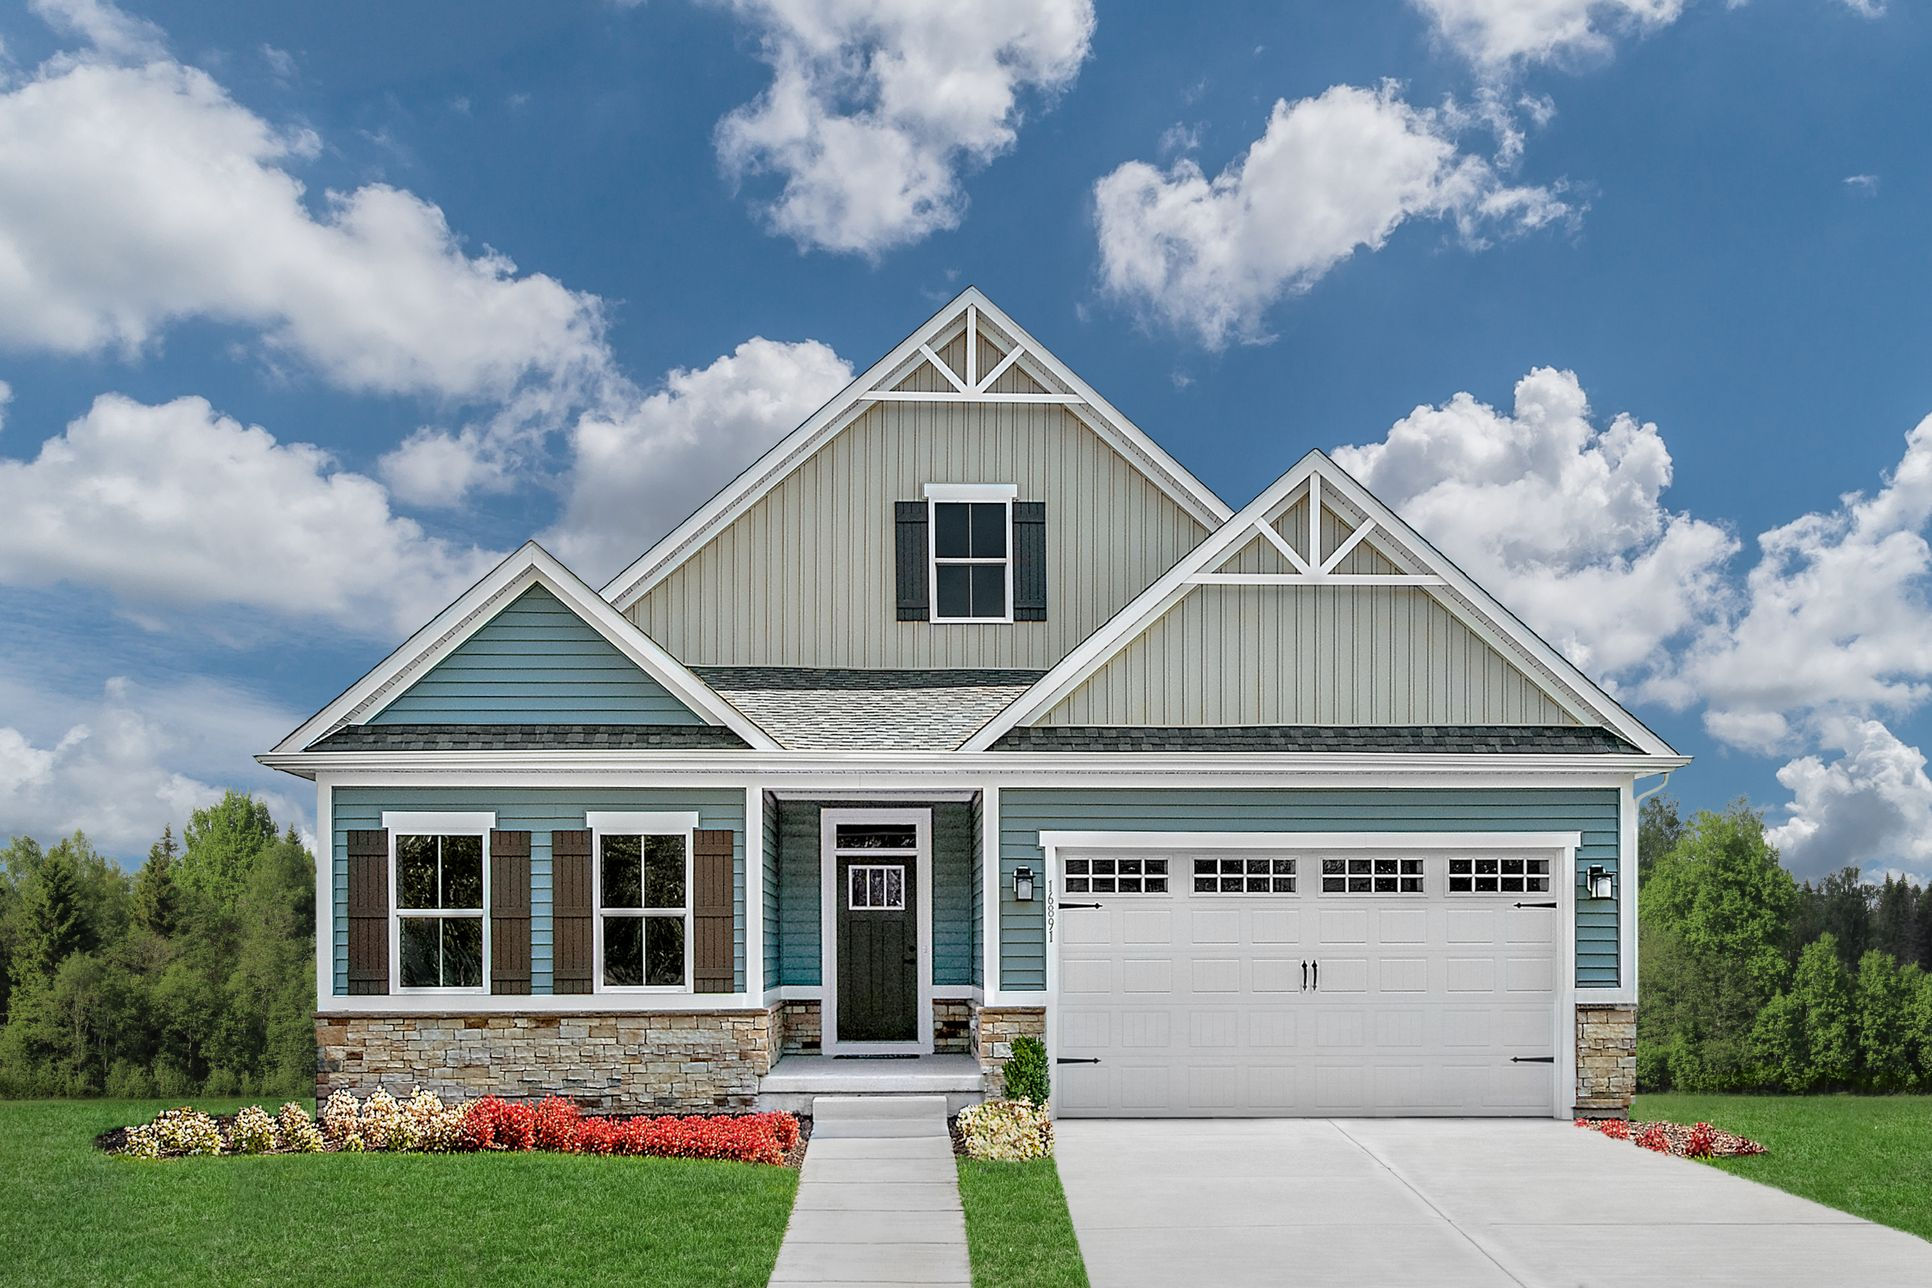 JOIN THE Nathanials Grove Ranches VIP LIST TODAY & GET EXCLUSIVE UPDATES!:Ranch-only homes in Beavercreek with no rear neighbor & pond view homesites. Future pool & walking trails. Close to WPAFB. Luxury features included—from low $300s.Join the VIP list today!